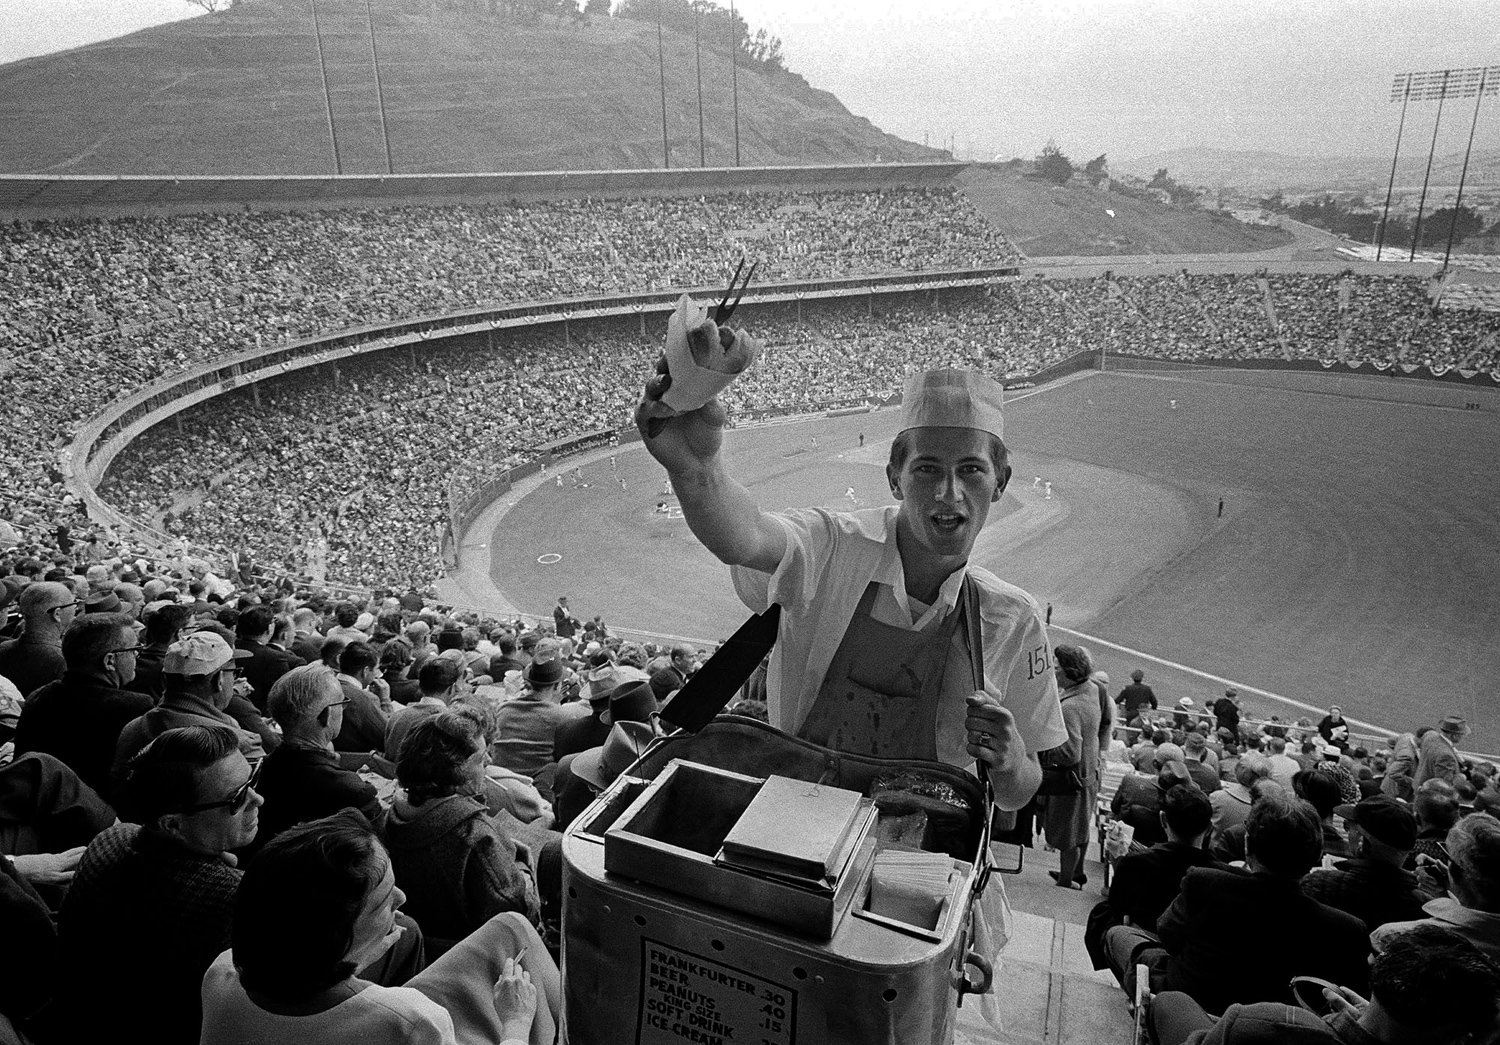 A hot dog vendor plies his wares amid a large crowd that turned out at Candlestick Park to watch the San Francisco Giants play their opening home game of the 1965 season against the Pittsburgh Pirates on April 20, 1965.